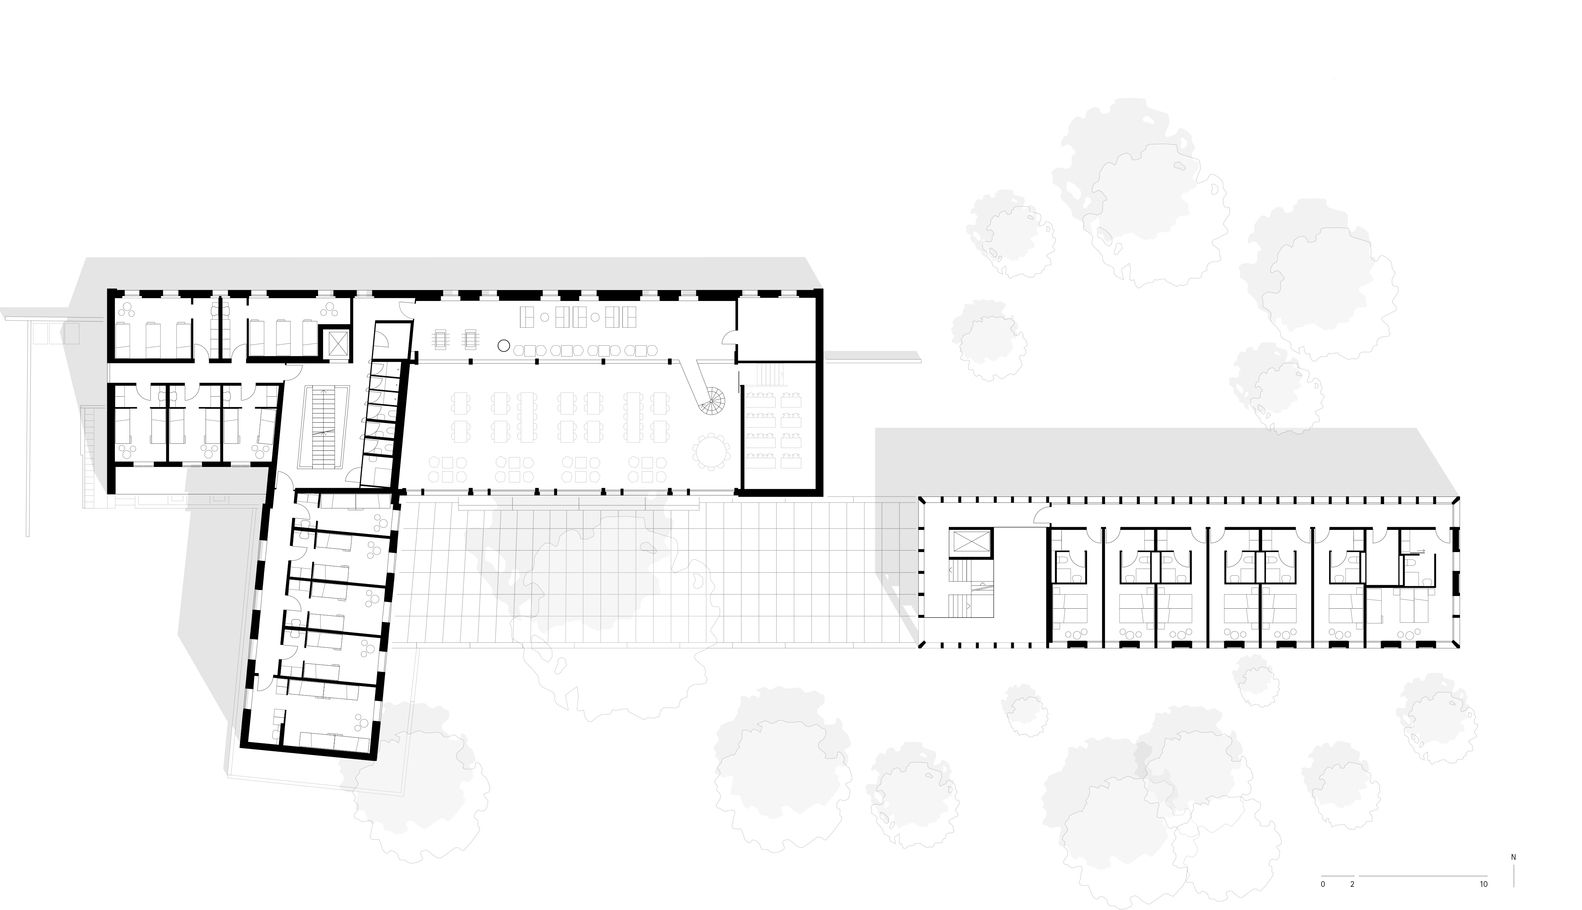 Gallery of Youth Hostel Bern / Aebi & Vincent Architects